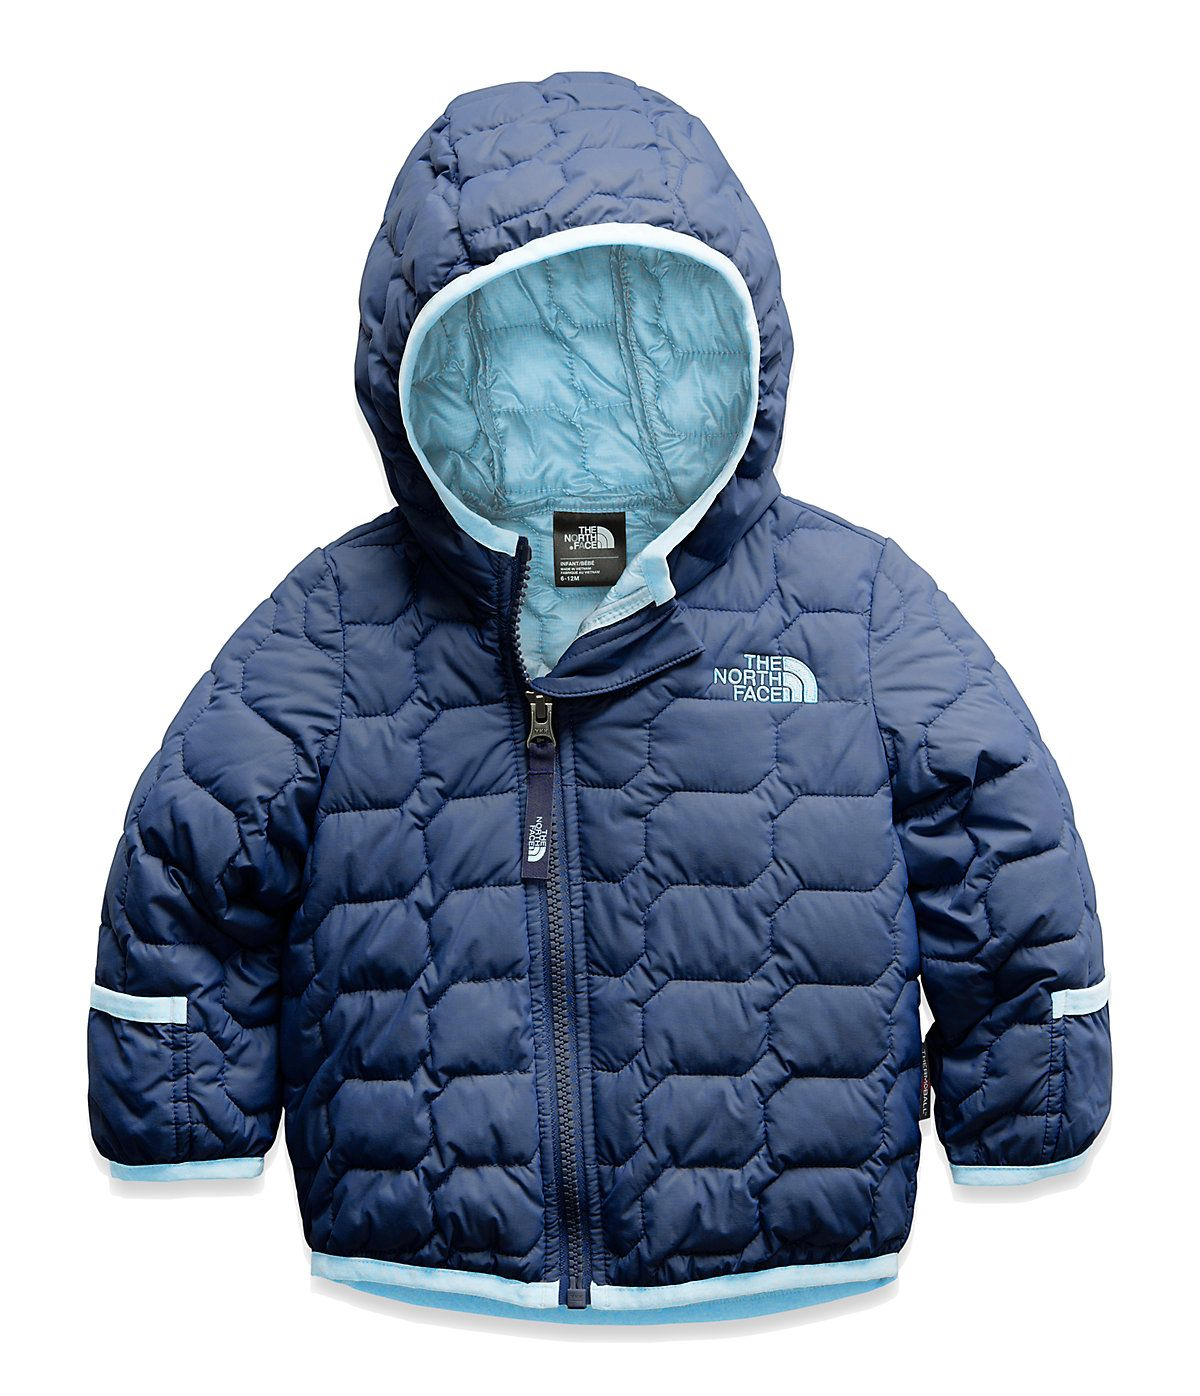 Infant Thermoball Hoodie The North Face Boy Outerwear The North Face Infant [ 1396 x 1200 Pixel ]